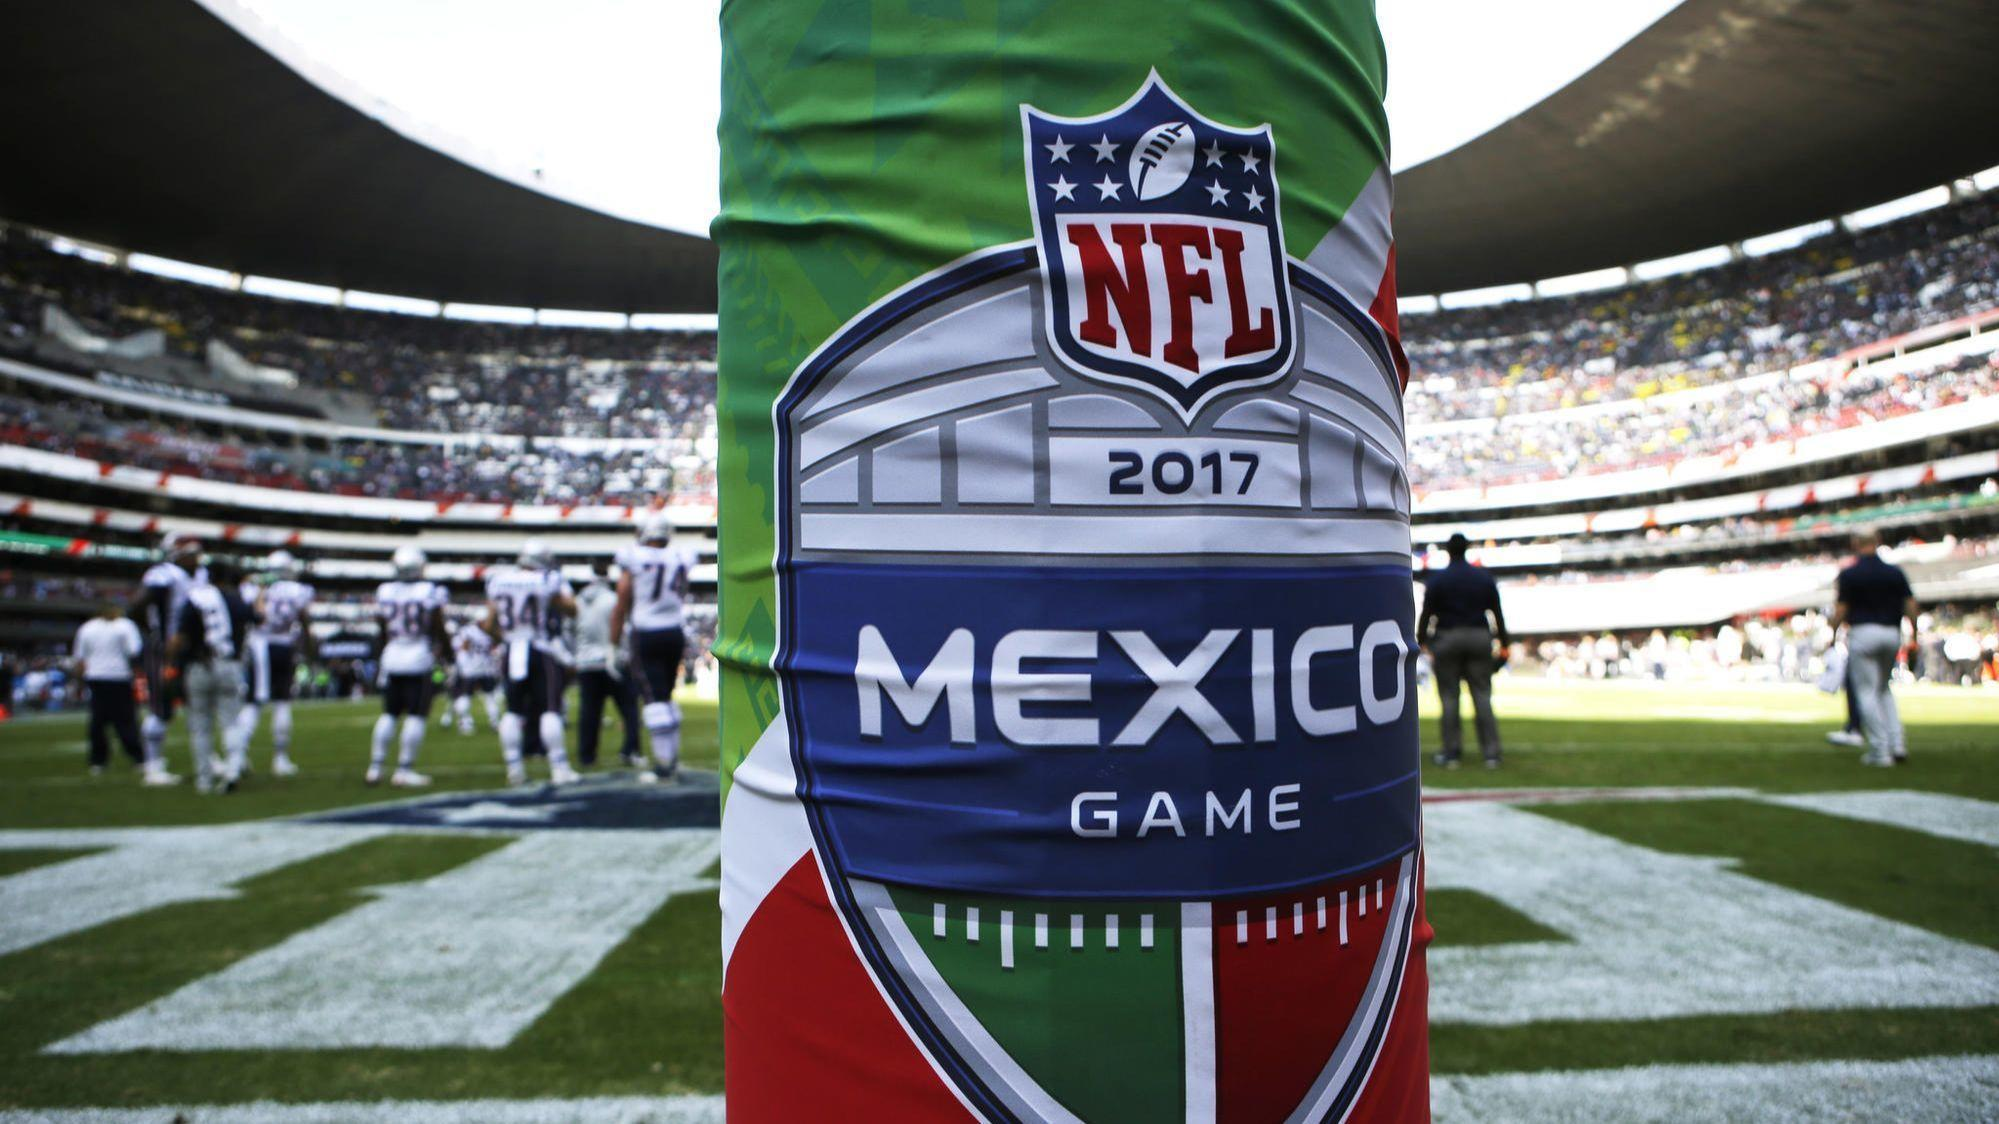 NFL skips this year's Mexico City game, but that won't stop pro leagues from trying to capitalize on the fruitful market